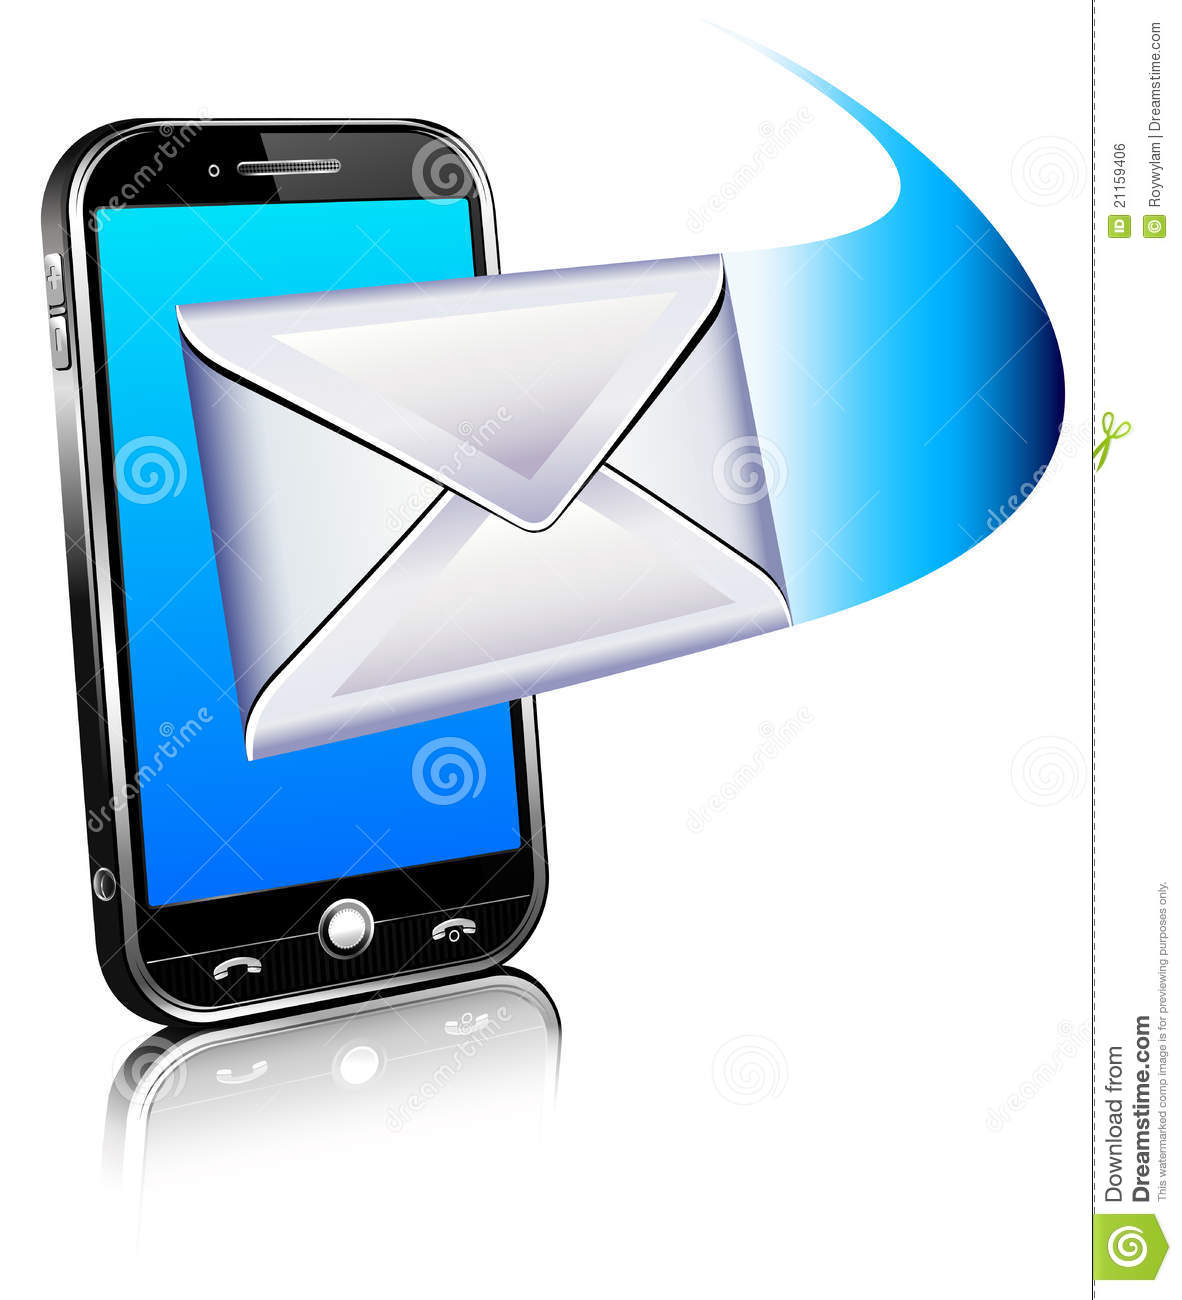 3D Send receive email icon - mobile phone